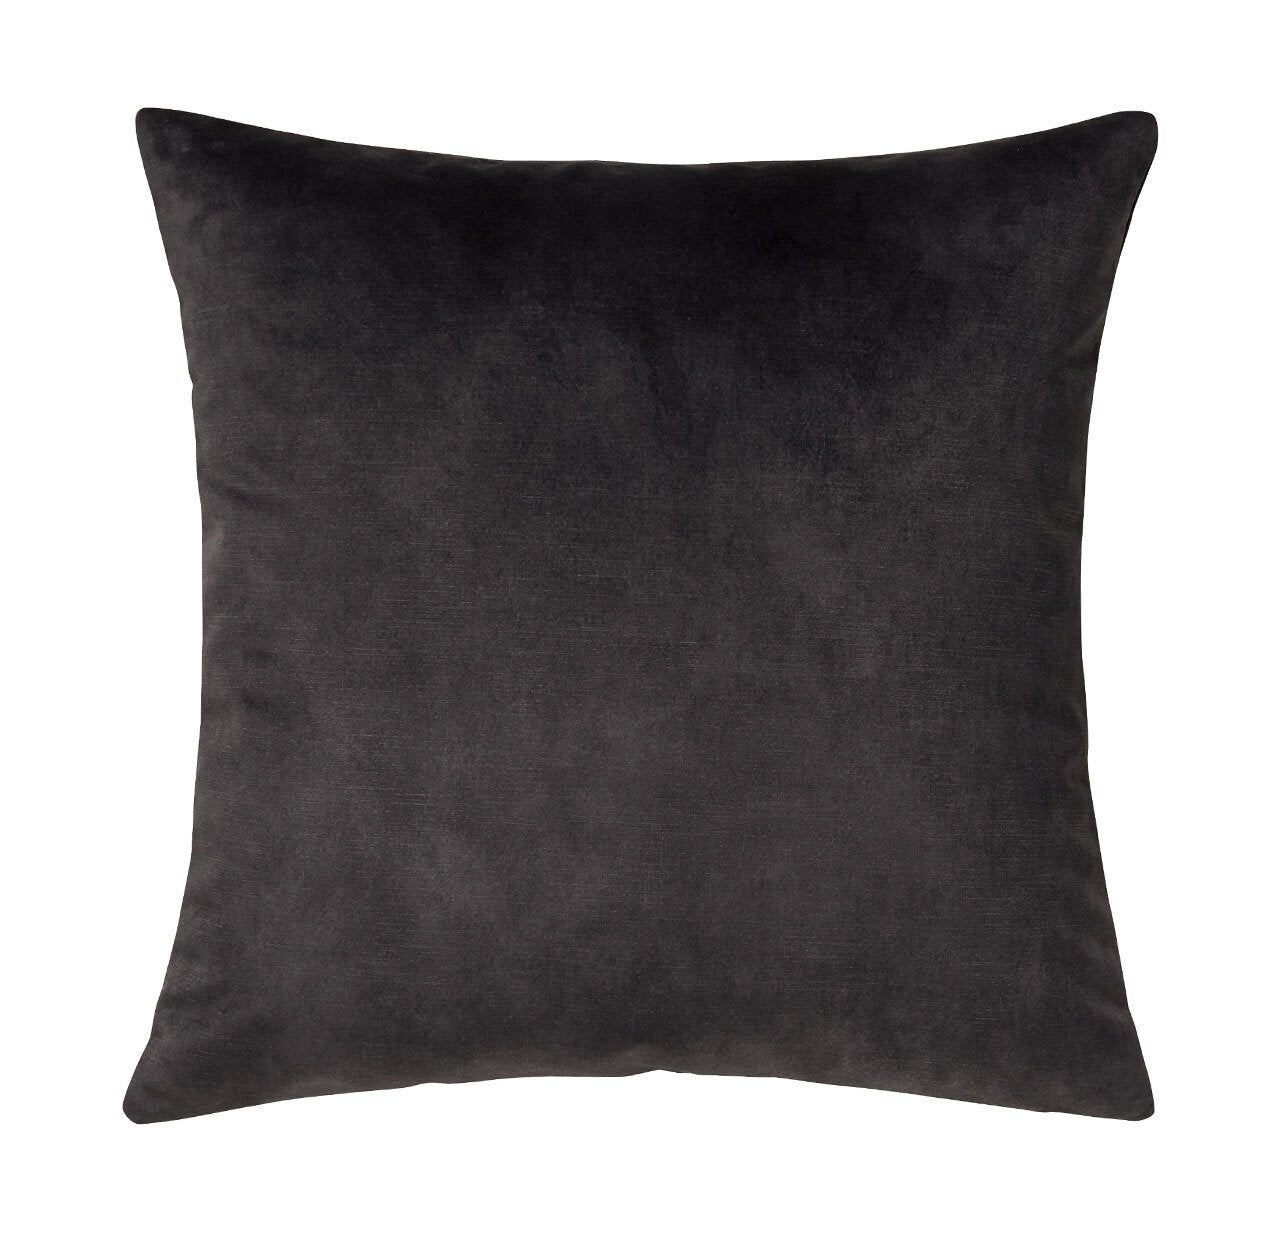 Velvet Ava Cushion - Coal